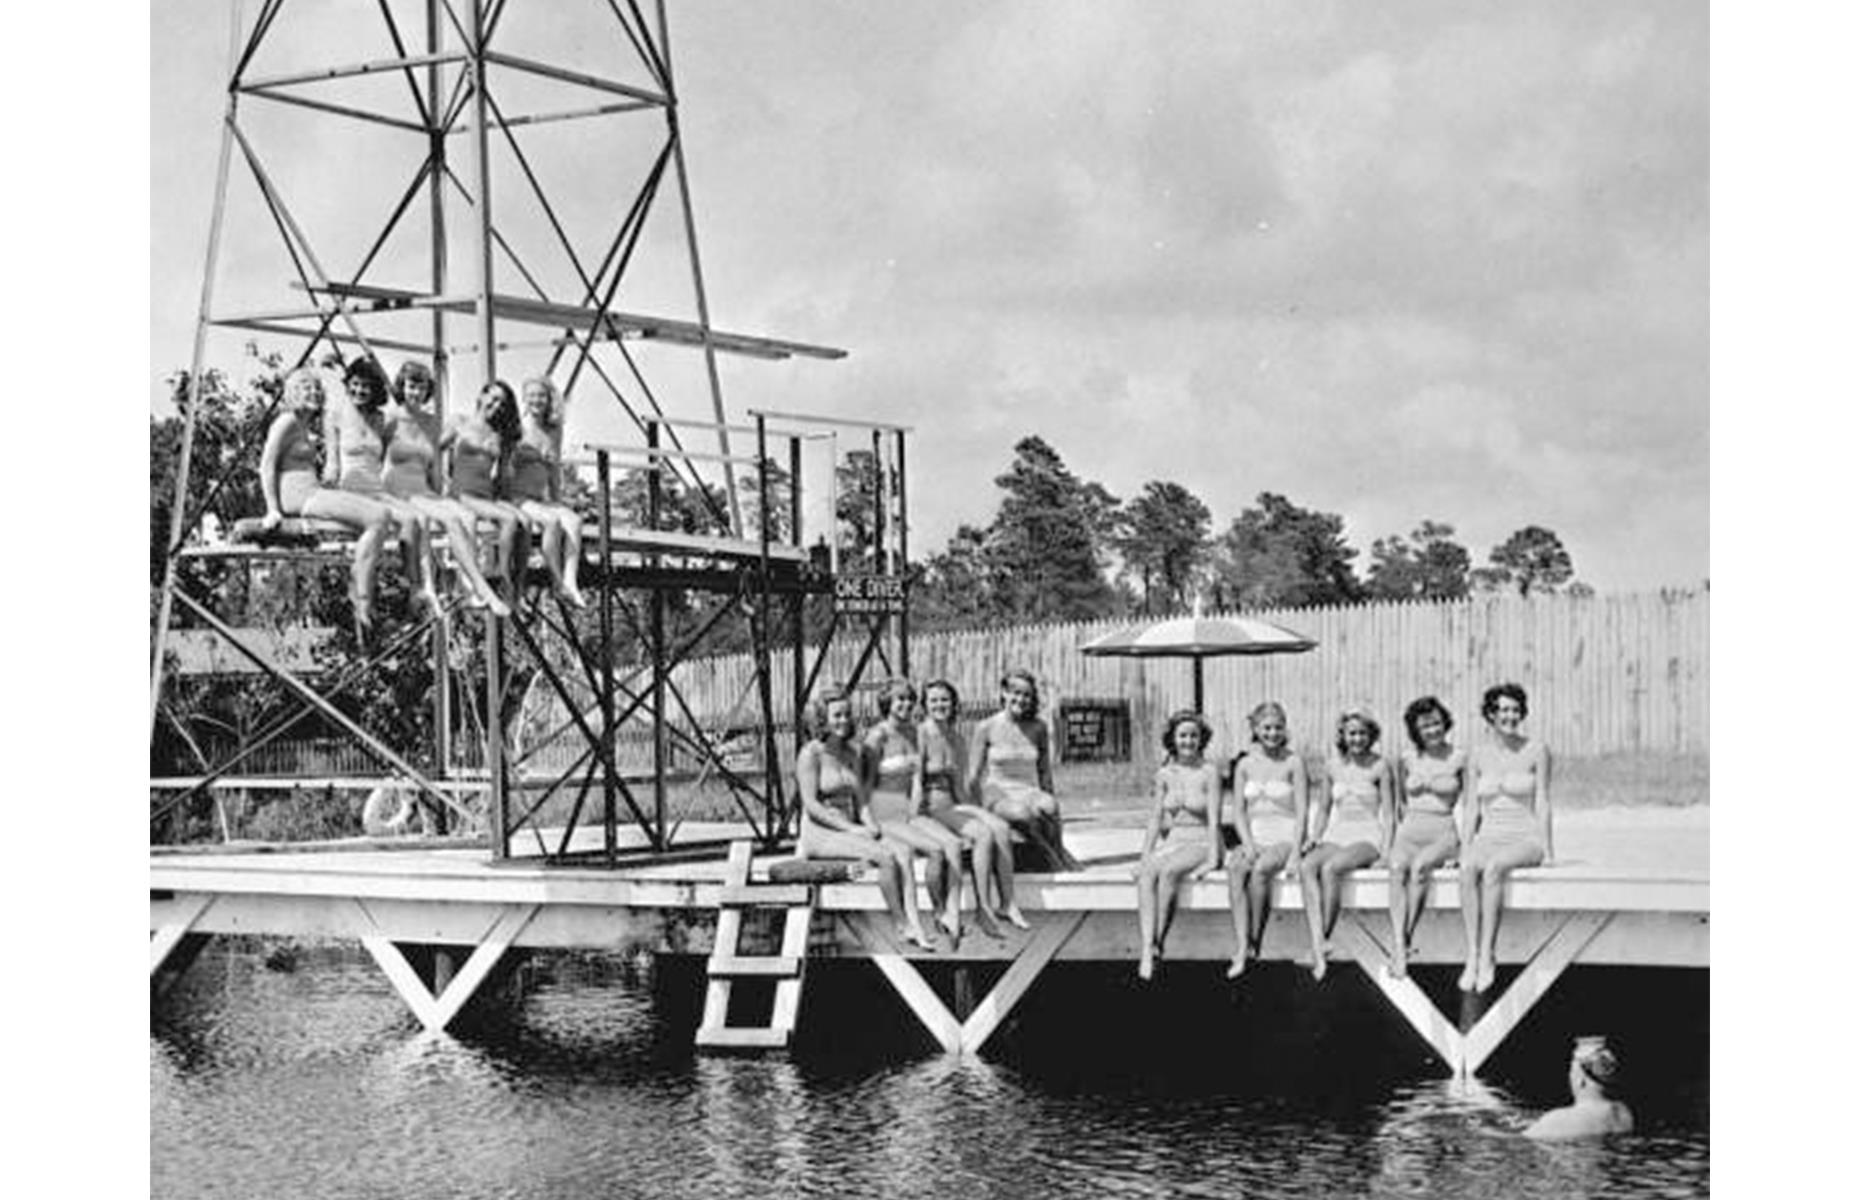 """Slide 38 of 47: To keep the magic alive, the mermaids rely on """"breathing hoses"""" invented in the 1940s by Newton Perry, the brains behind the attraction and its former owner. A troupe is pictured here in 1949, smiling from a dock and diving tower at Weeki Wachee, ready for their next show. The site now also boasts a water park, riverboat rides and casual restaurants."""